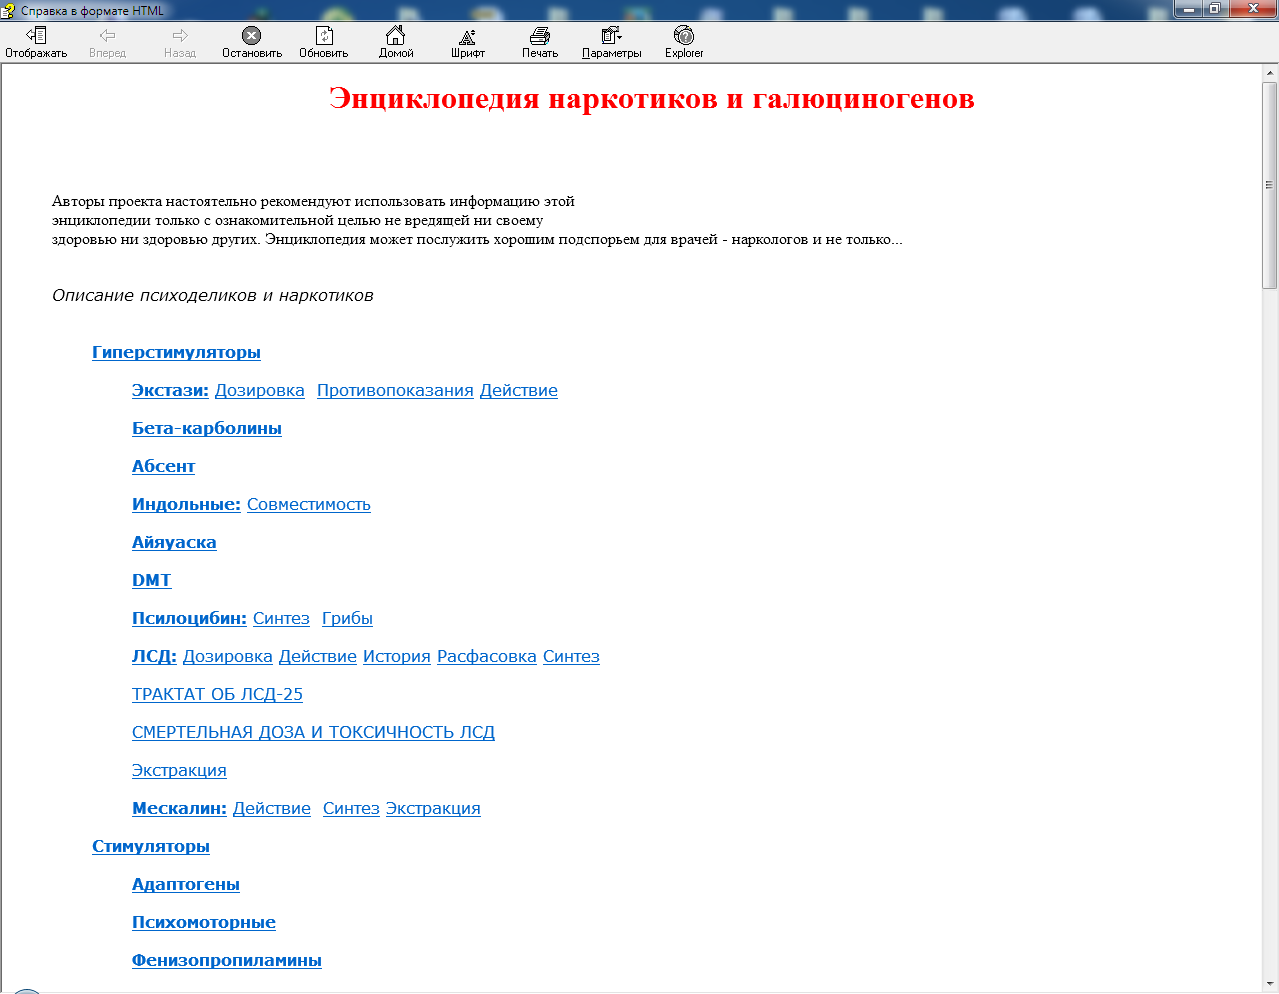 Encyclopedia of drugs and galucinogens